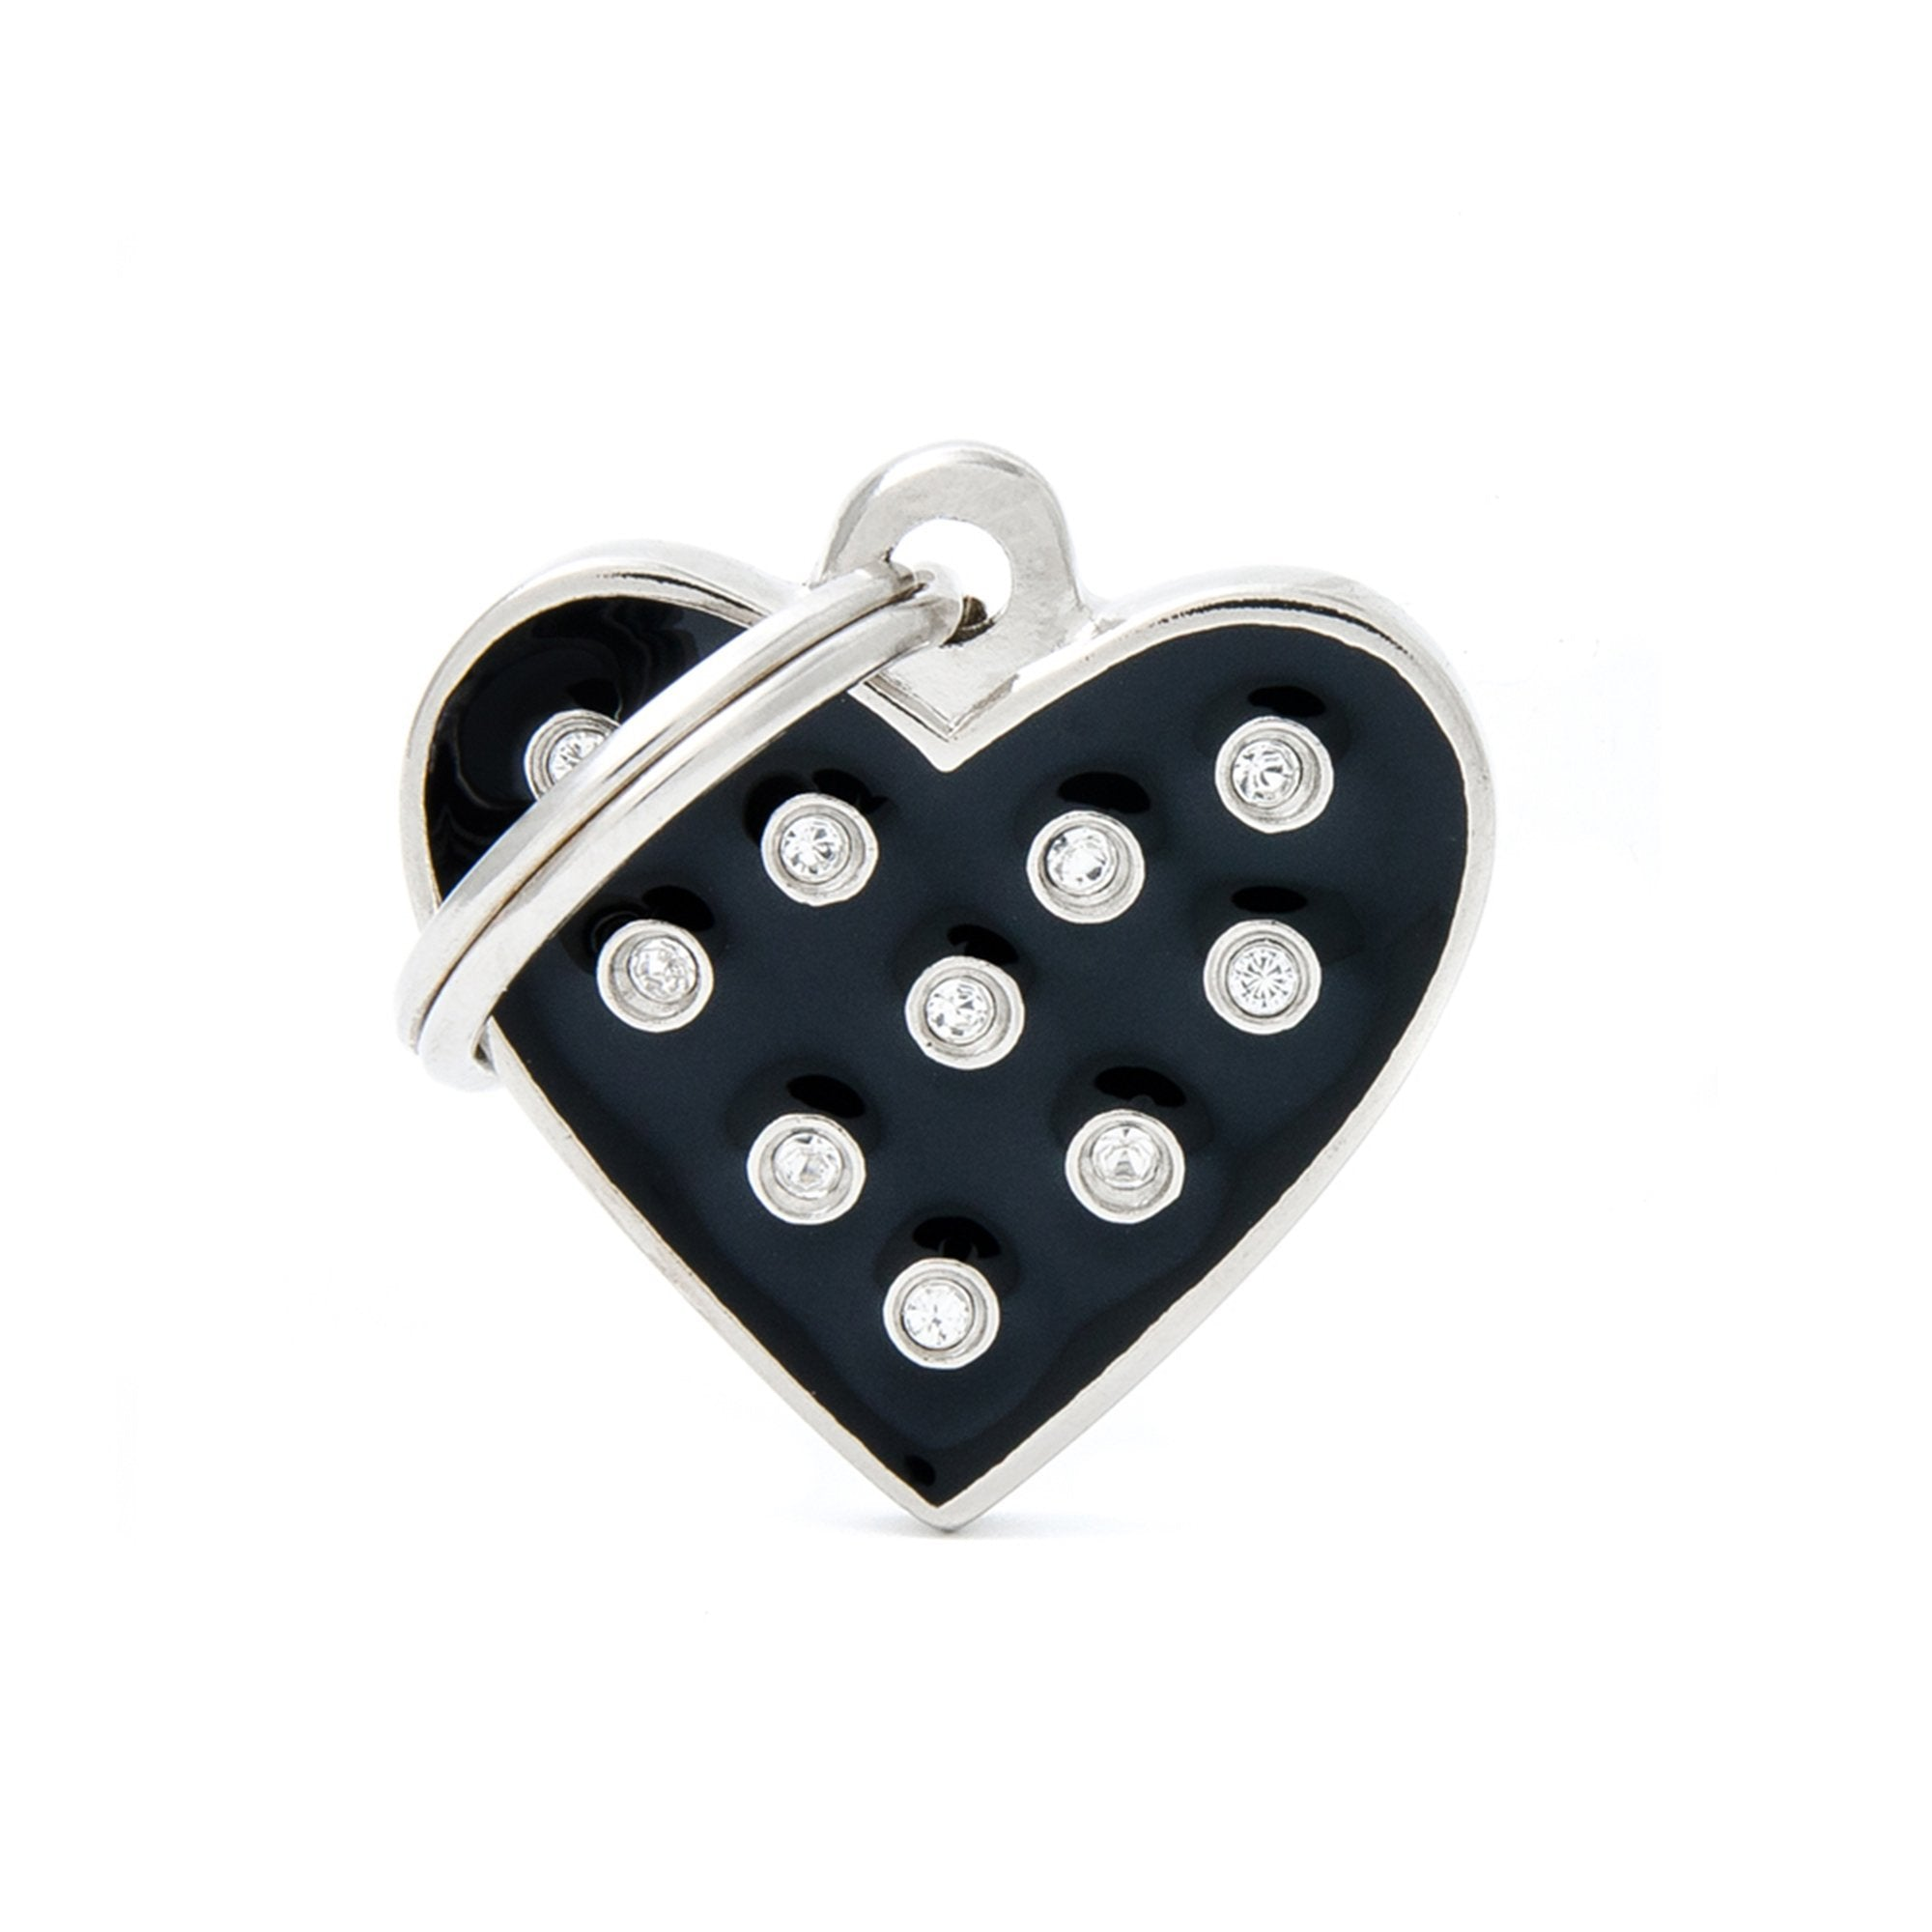 My Family Chic Black Heart PET I.D TAG